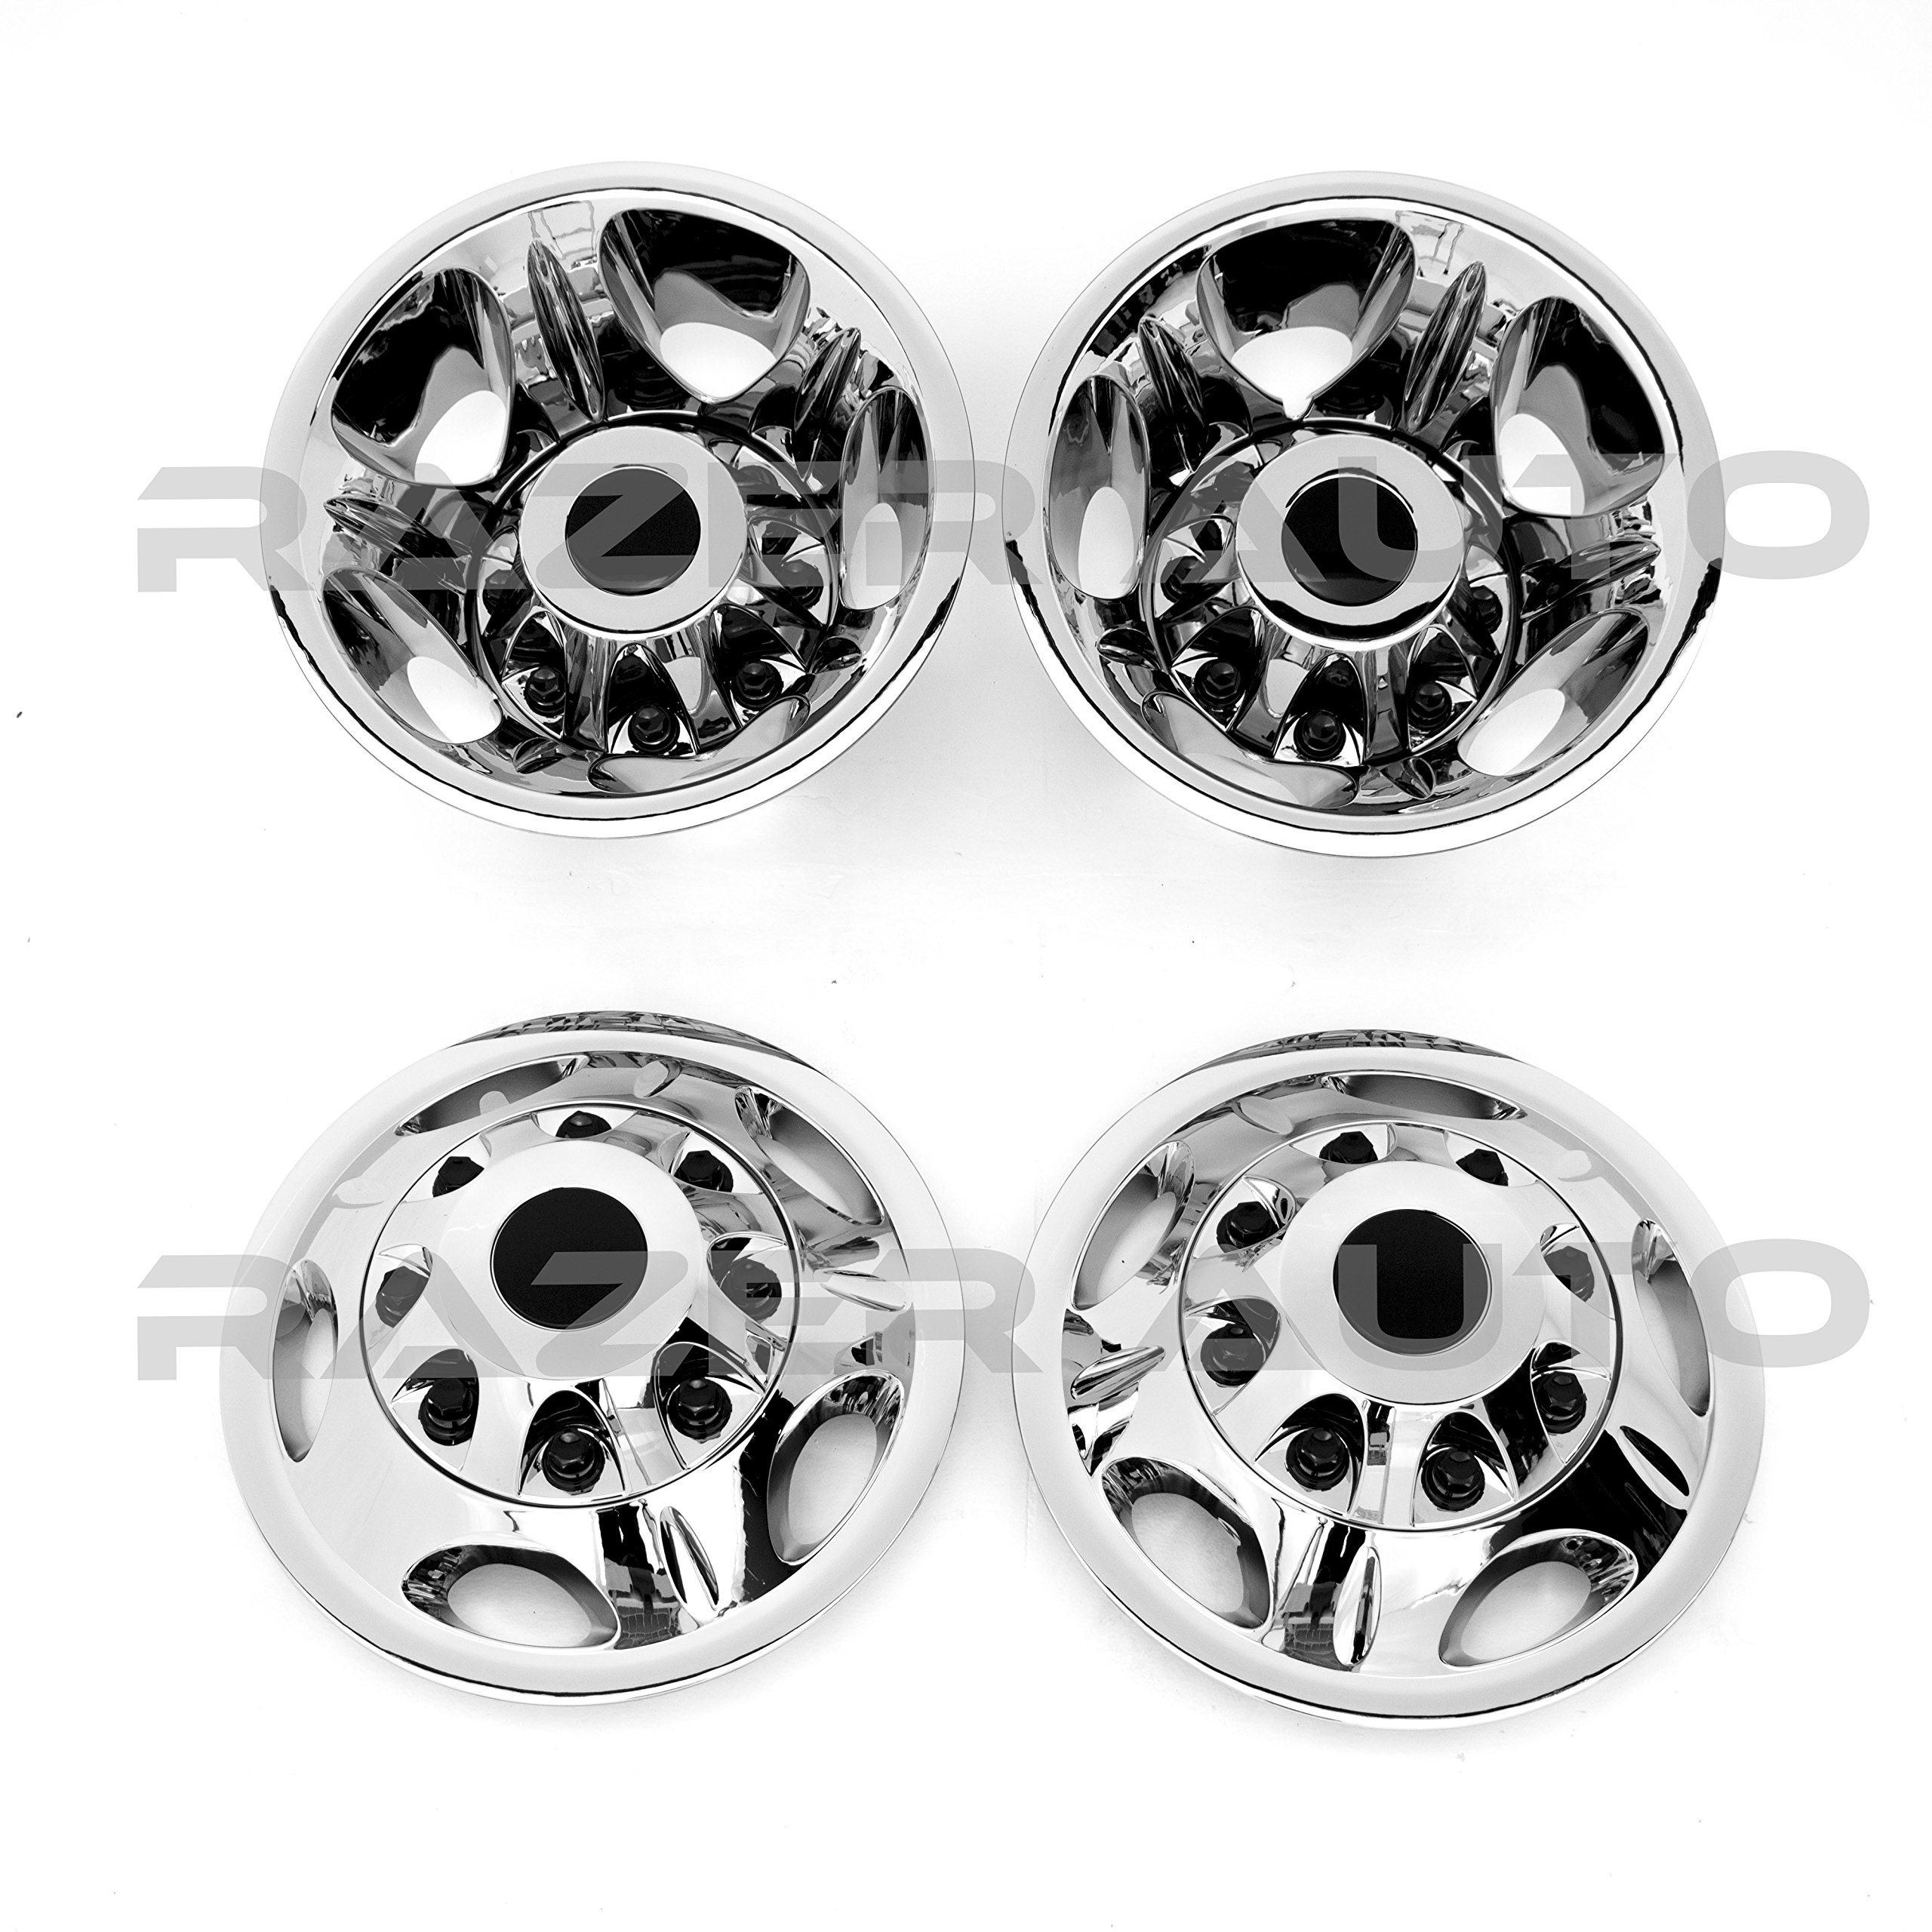 11-16 Chevy Silverado 3500 Dually & 11-16 GMC Sierra 3500 Dually ONLY Chrome 17'' Wheel Simulator Liner + Center Caps Cover 8pcs Set (Chrome)